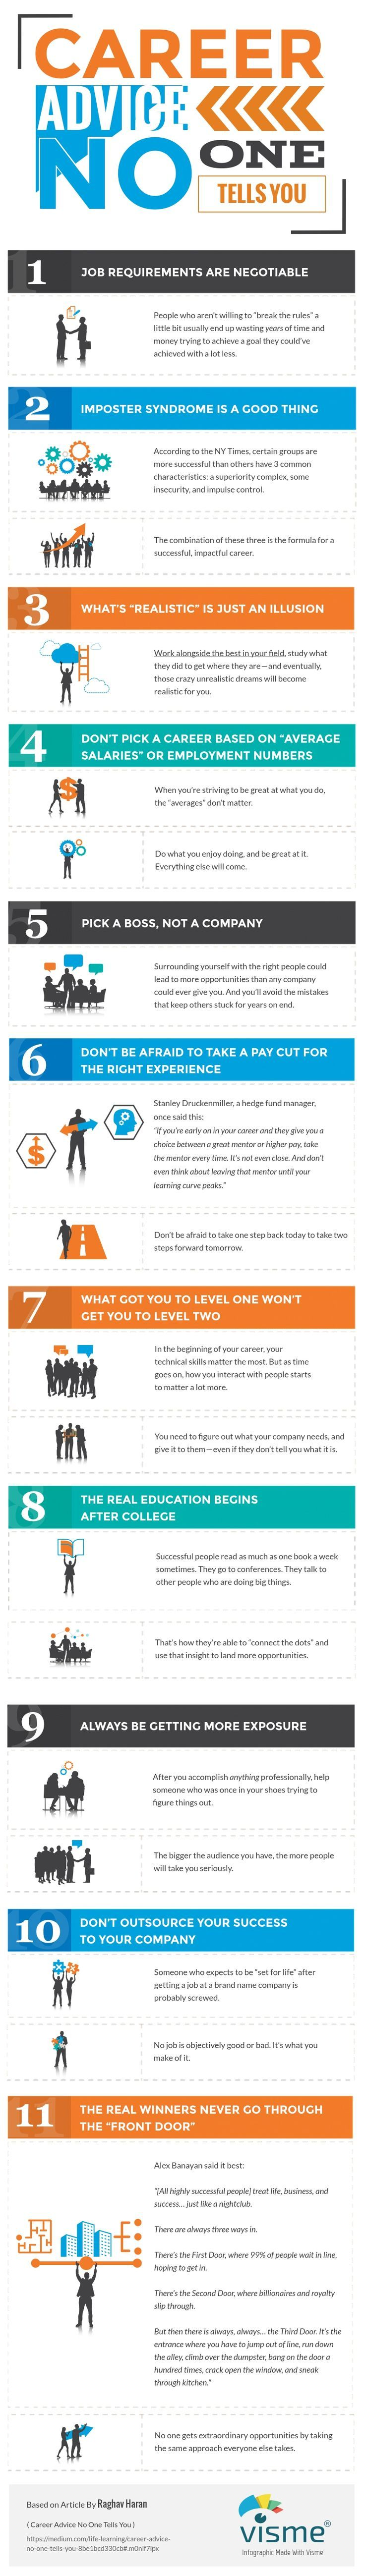 Career Advice No One Tells You Infographic